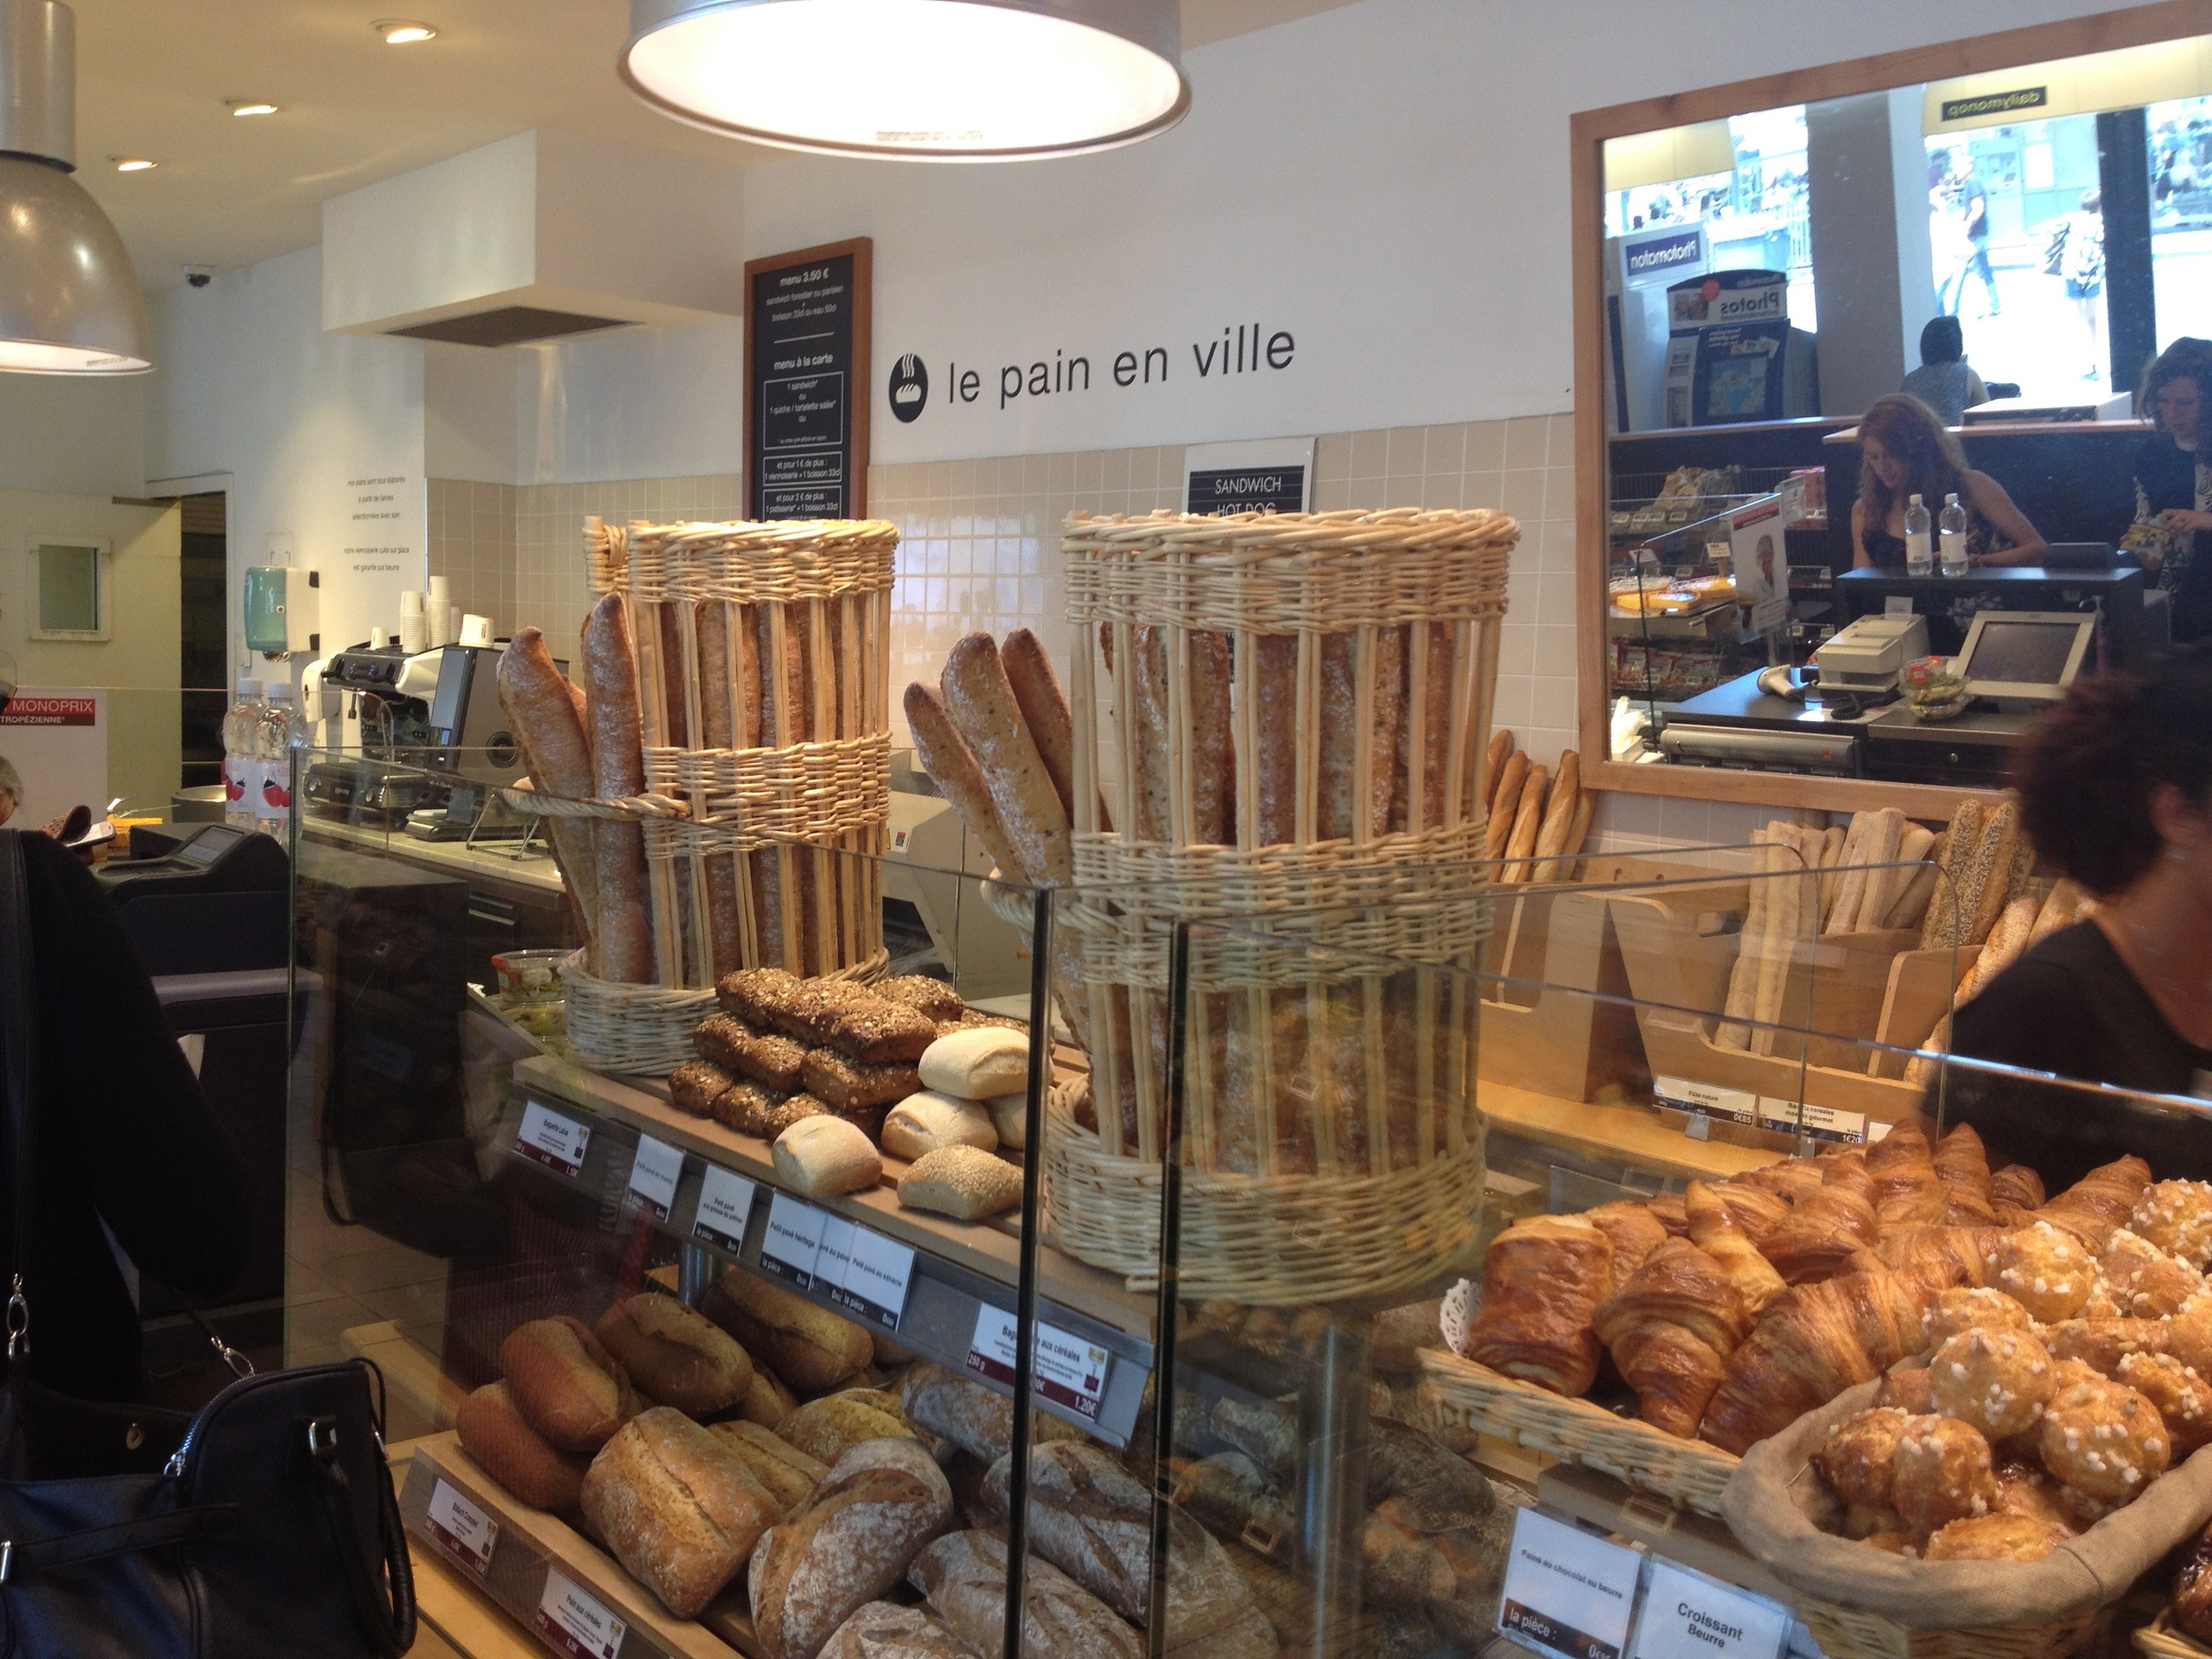 The bakery in Monoprix. Not bad!